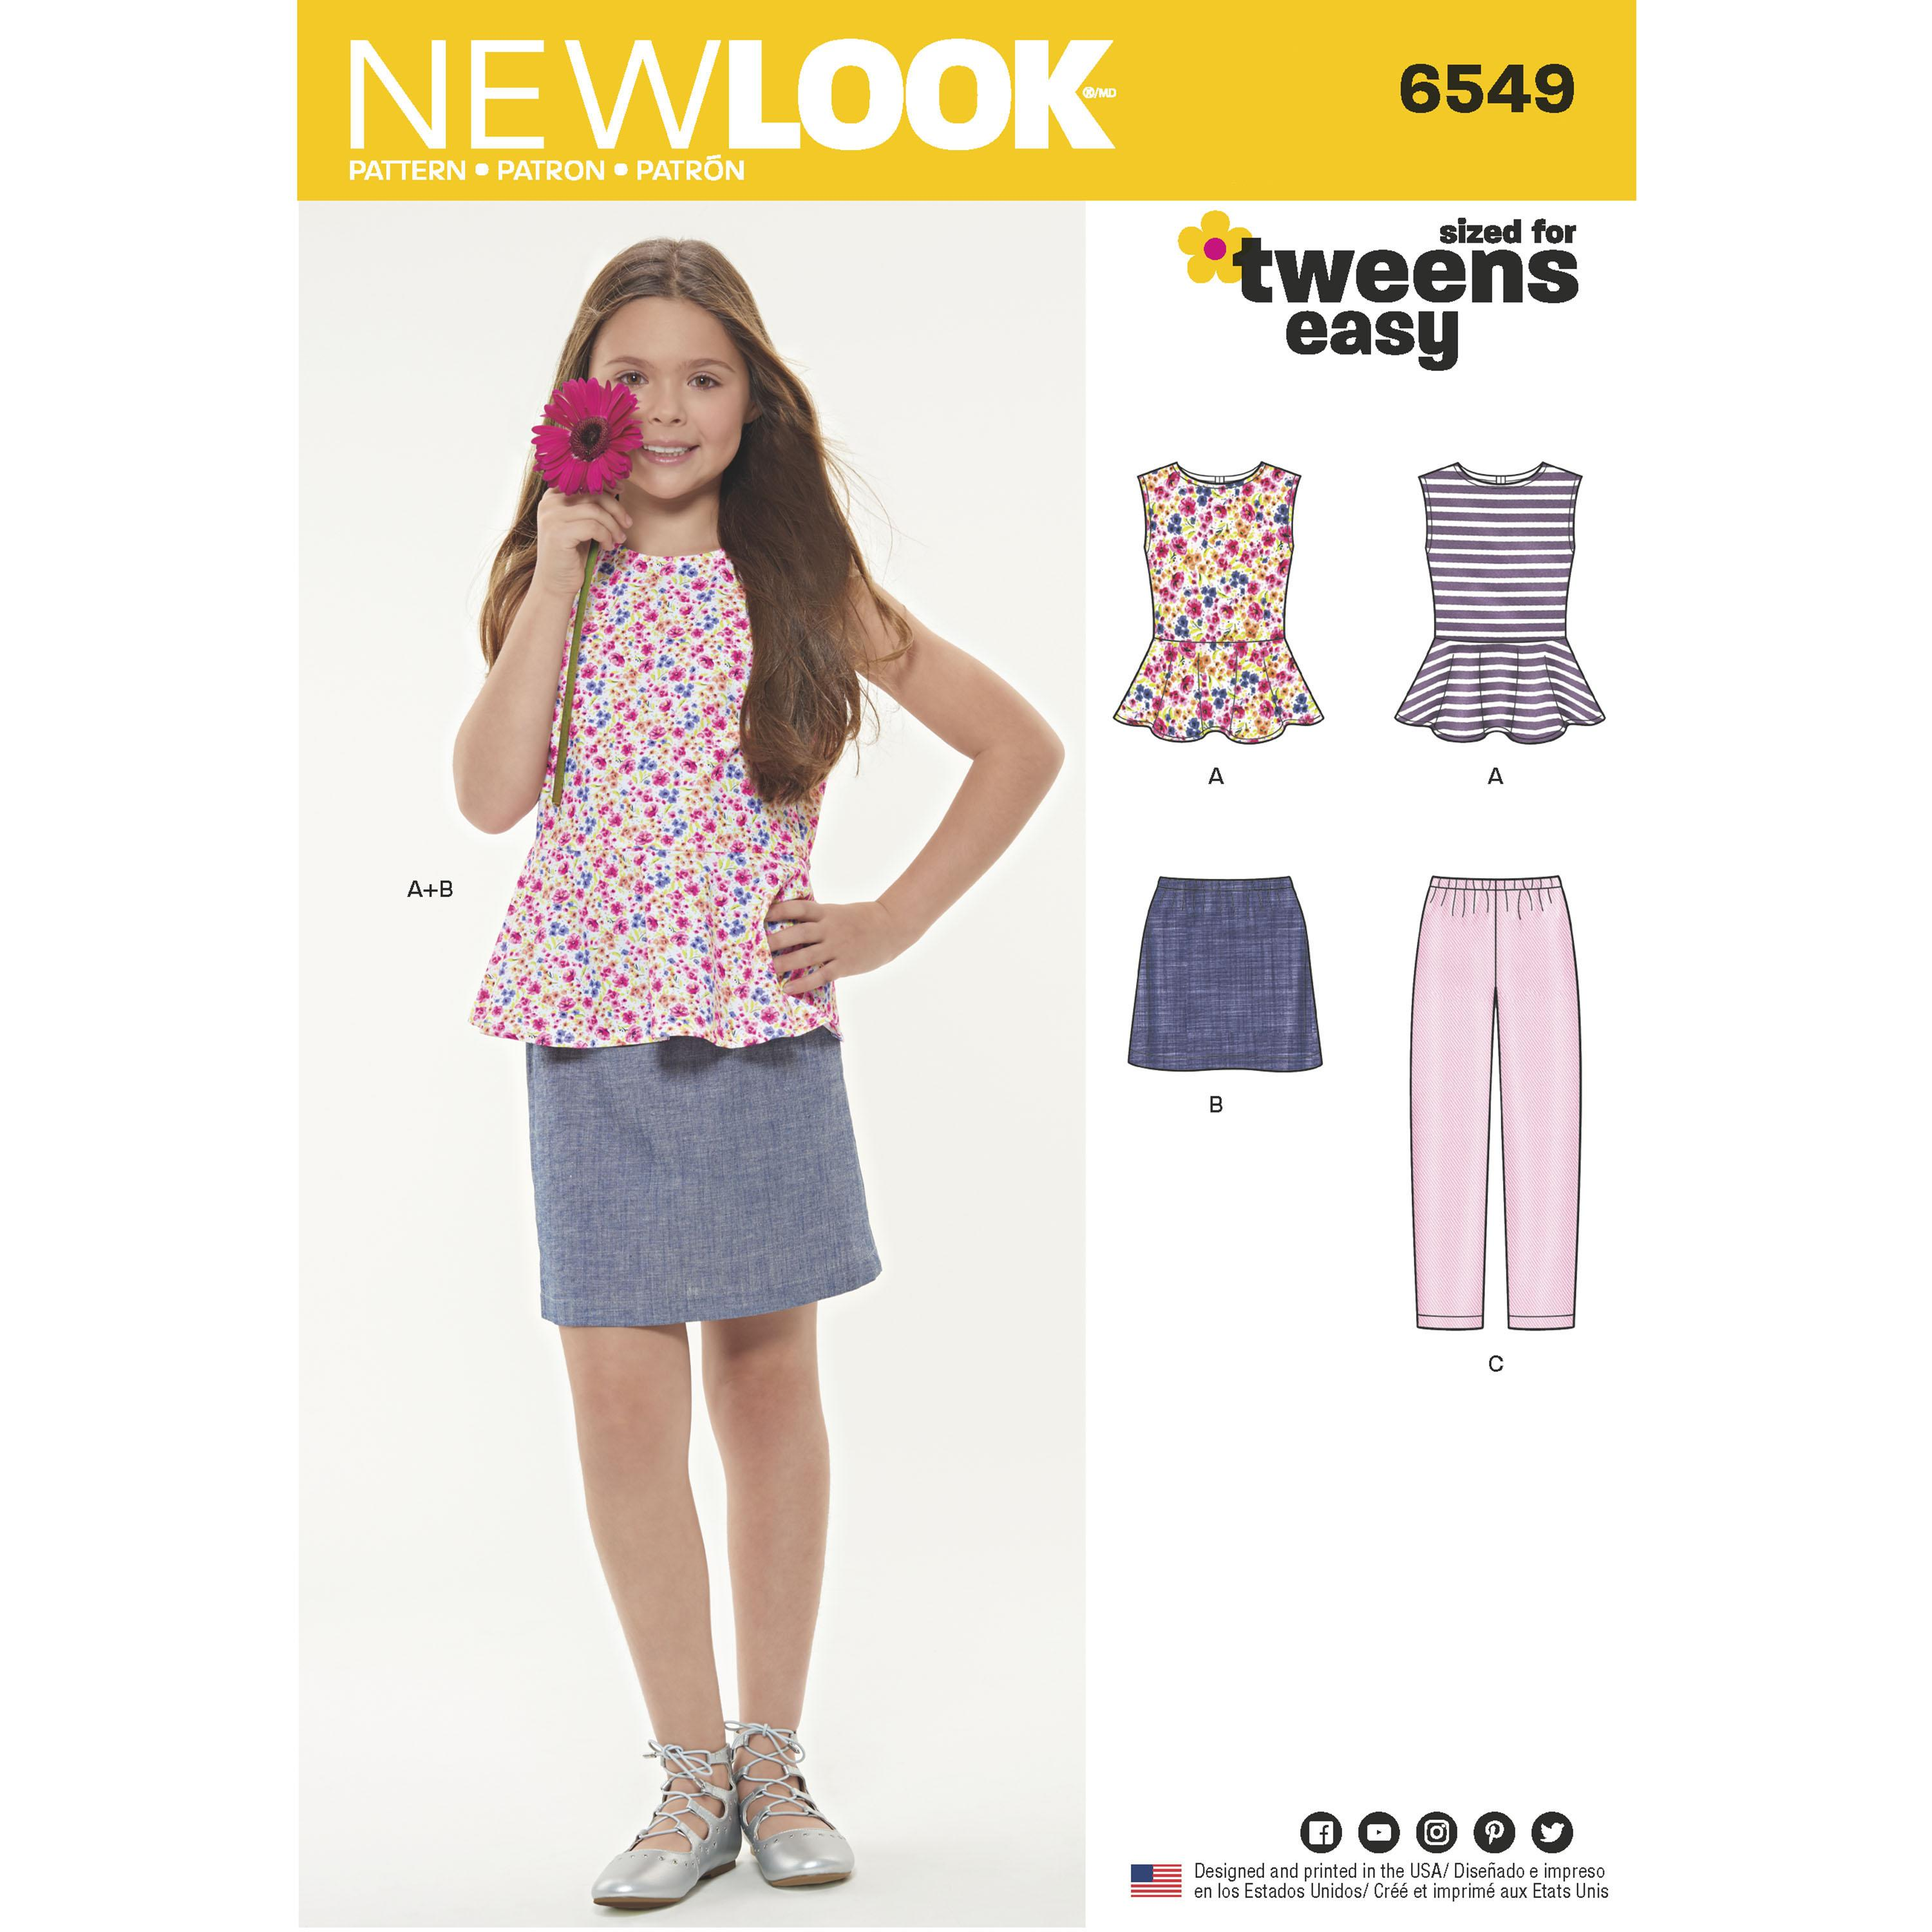 NewLook N6549 Girls' Top, Skirt and Pants